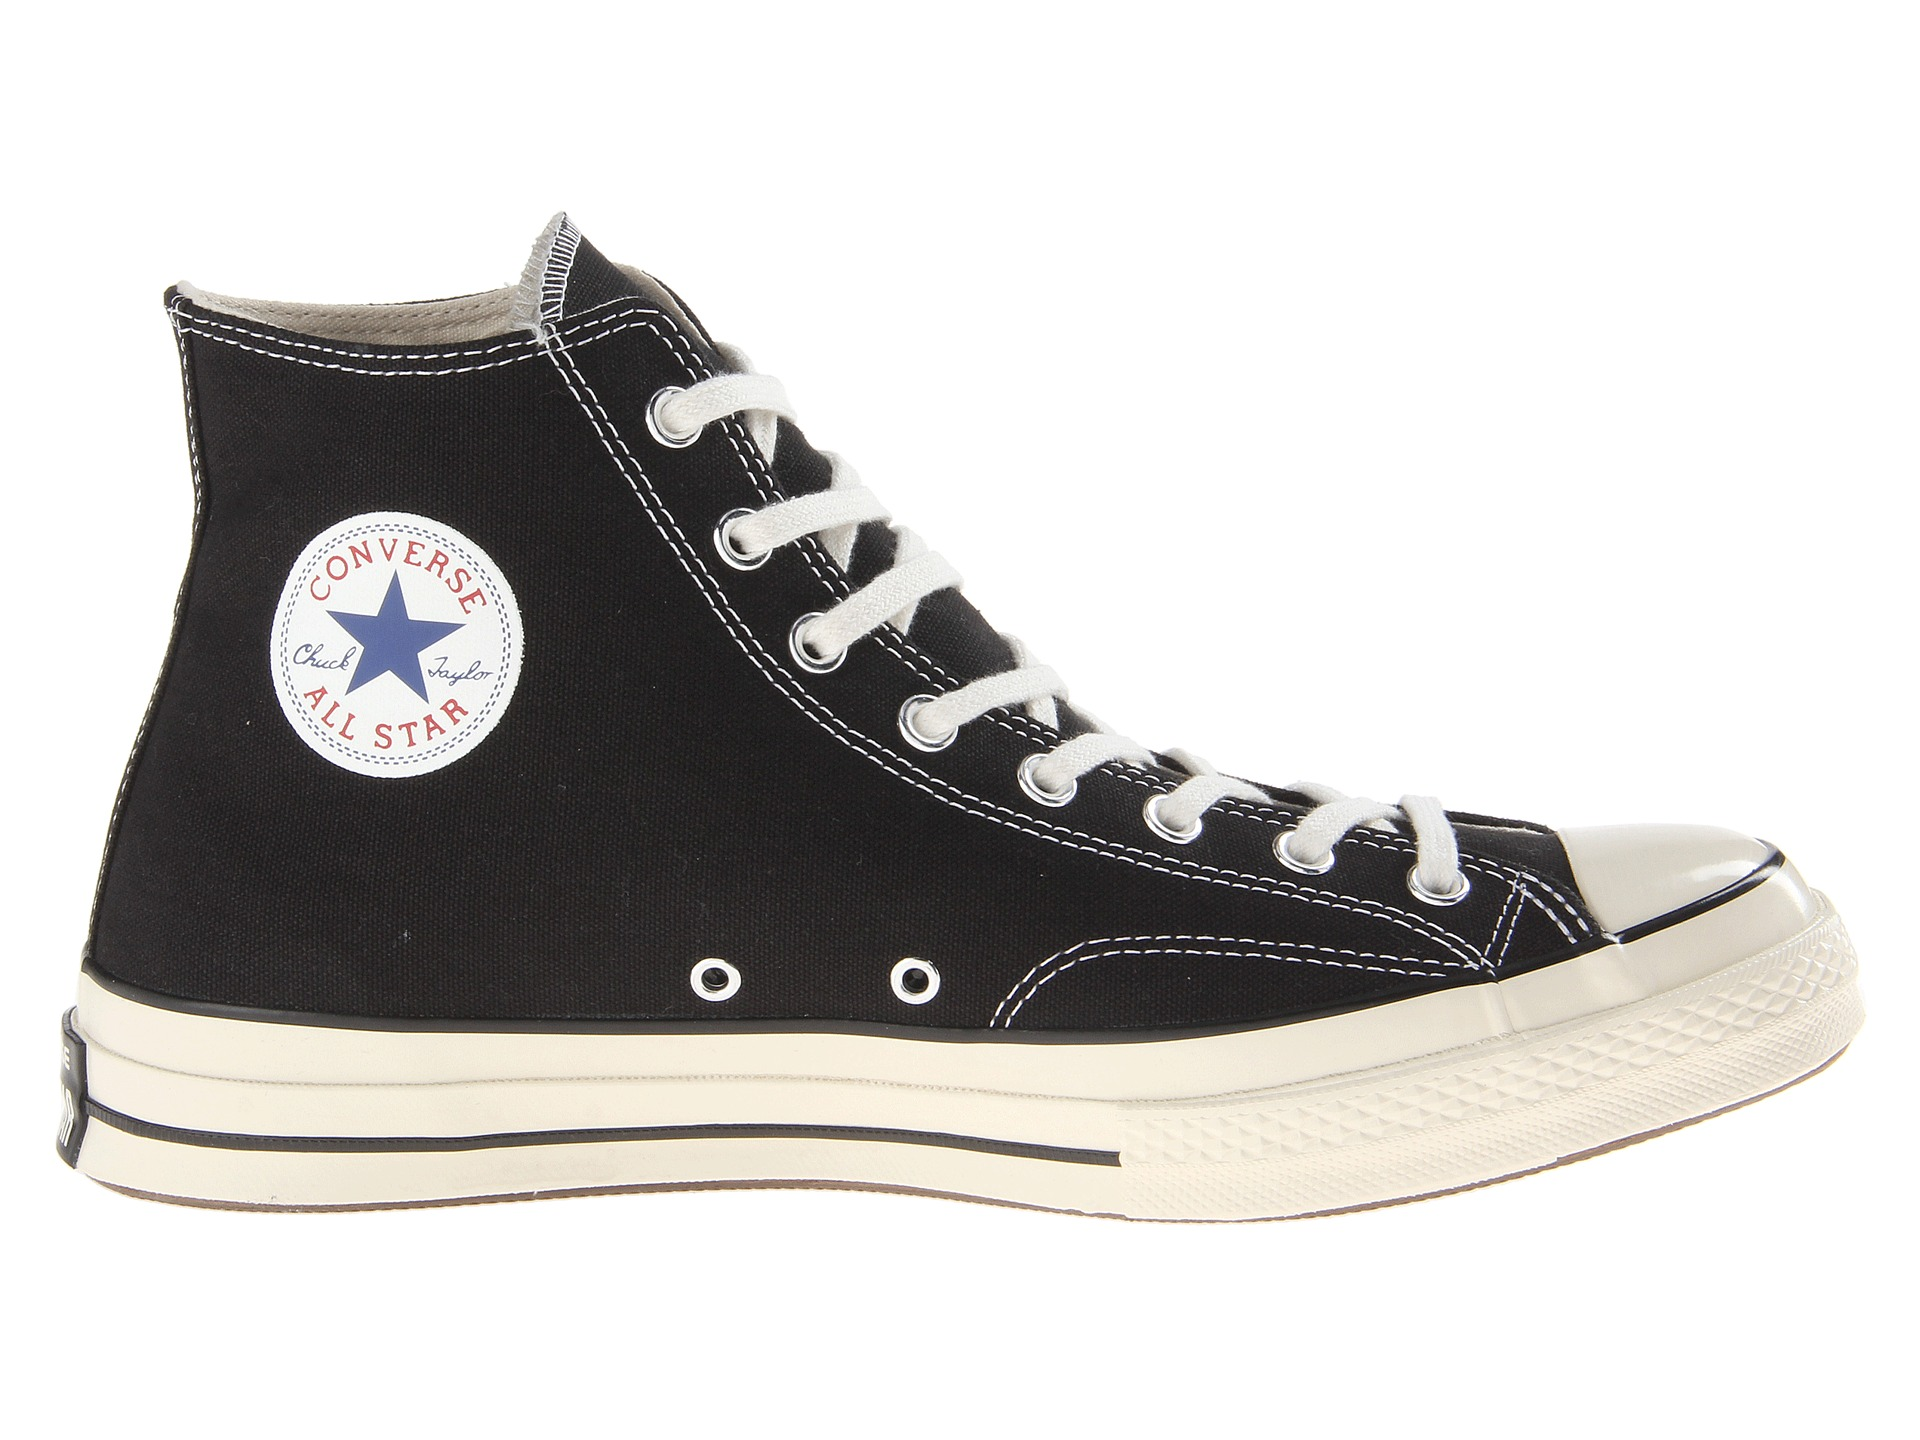 converse chuck taylor all star 39 70 hi free shipping both ways. Black Bedroom Furniture Sets. Home Design Ideas